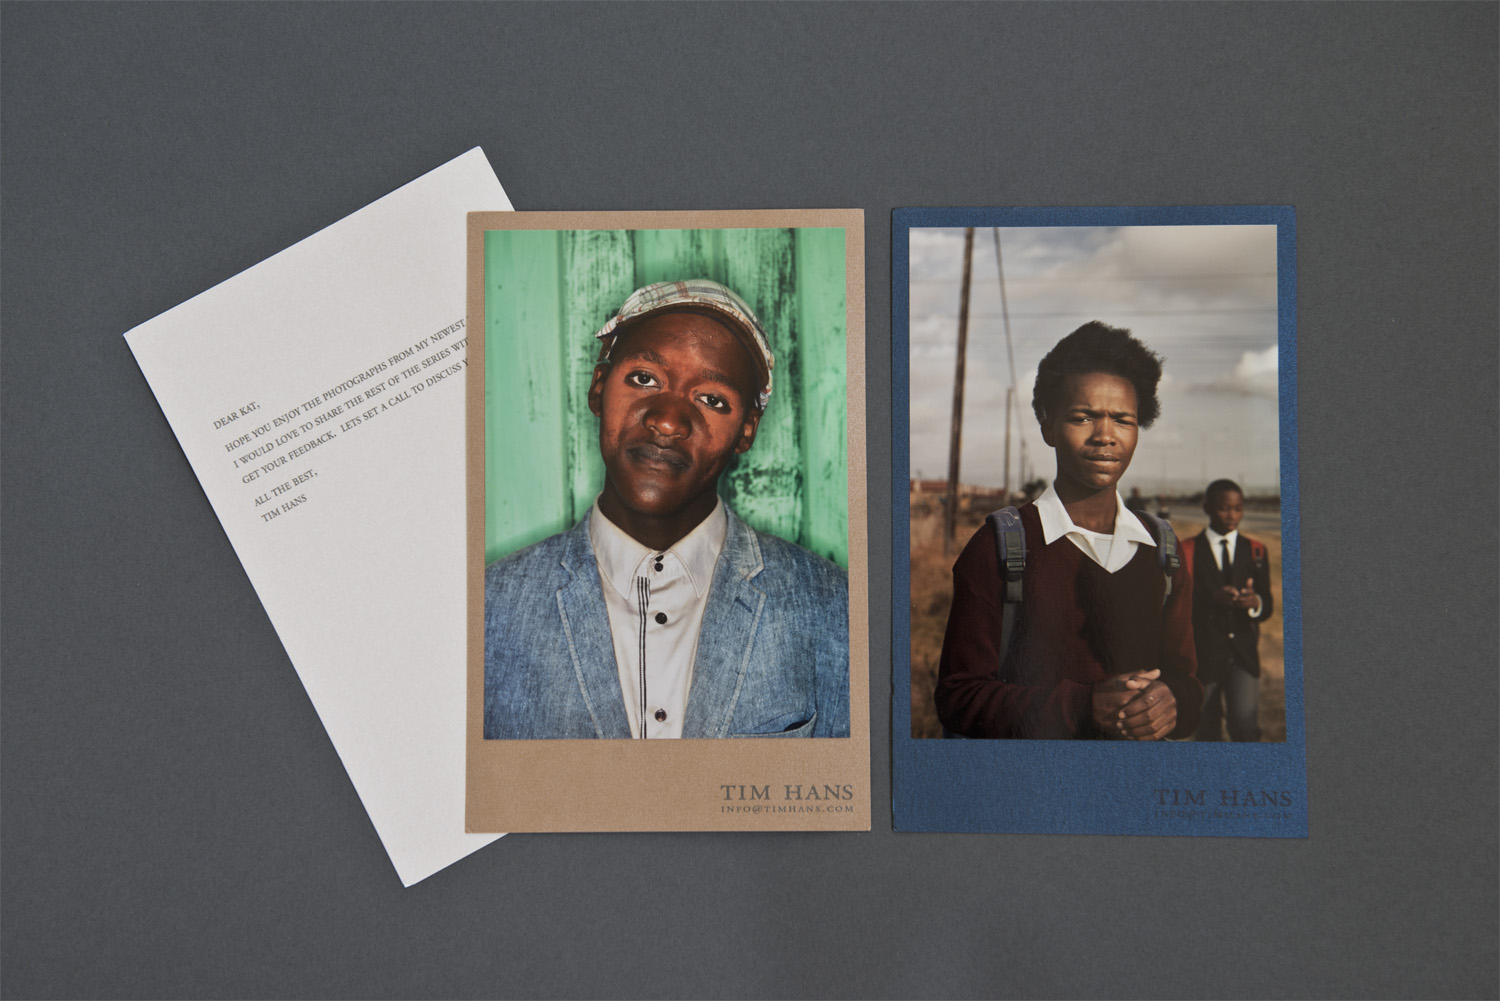 Sometimes photographers send submission packets that contain virtually no information about who they are and what intentions they have for their work. Other times we receive novellas of the artist's life story and aspirations. Tim Hans' portfolio sample was just the right balance. He included a letter of introduction that was short, to the point, and not presumptuous, while still making it clear that he wished to discuss the work further.  The two images included are on metallic paper to provide a sense of what the exhibition print quality might be. The shiny colored papers they are mounted on are an unusual choice, but coordinate well with the prints and contain his contact information. By mounting the prints onto these cards, Hans creates a professional presentation with a handmade feel.